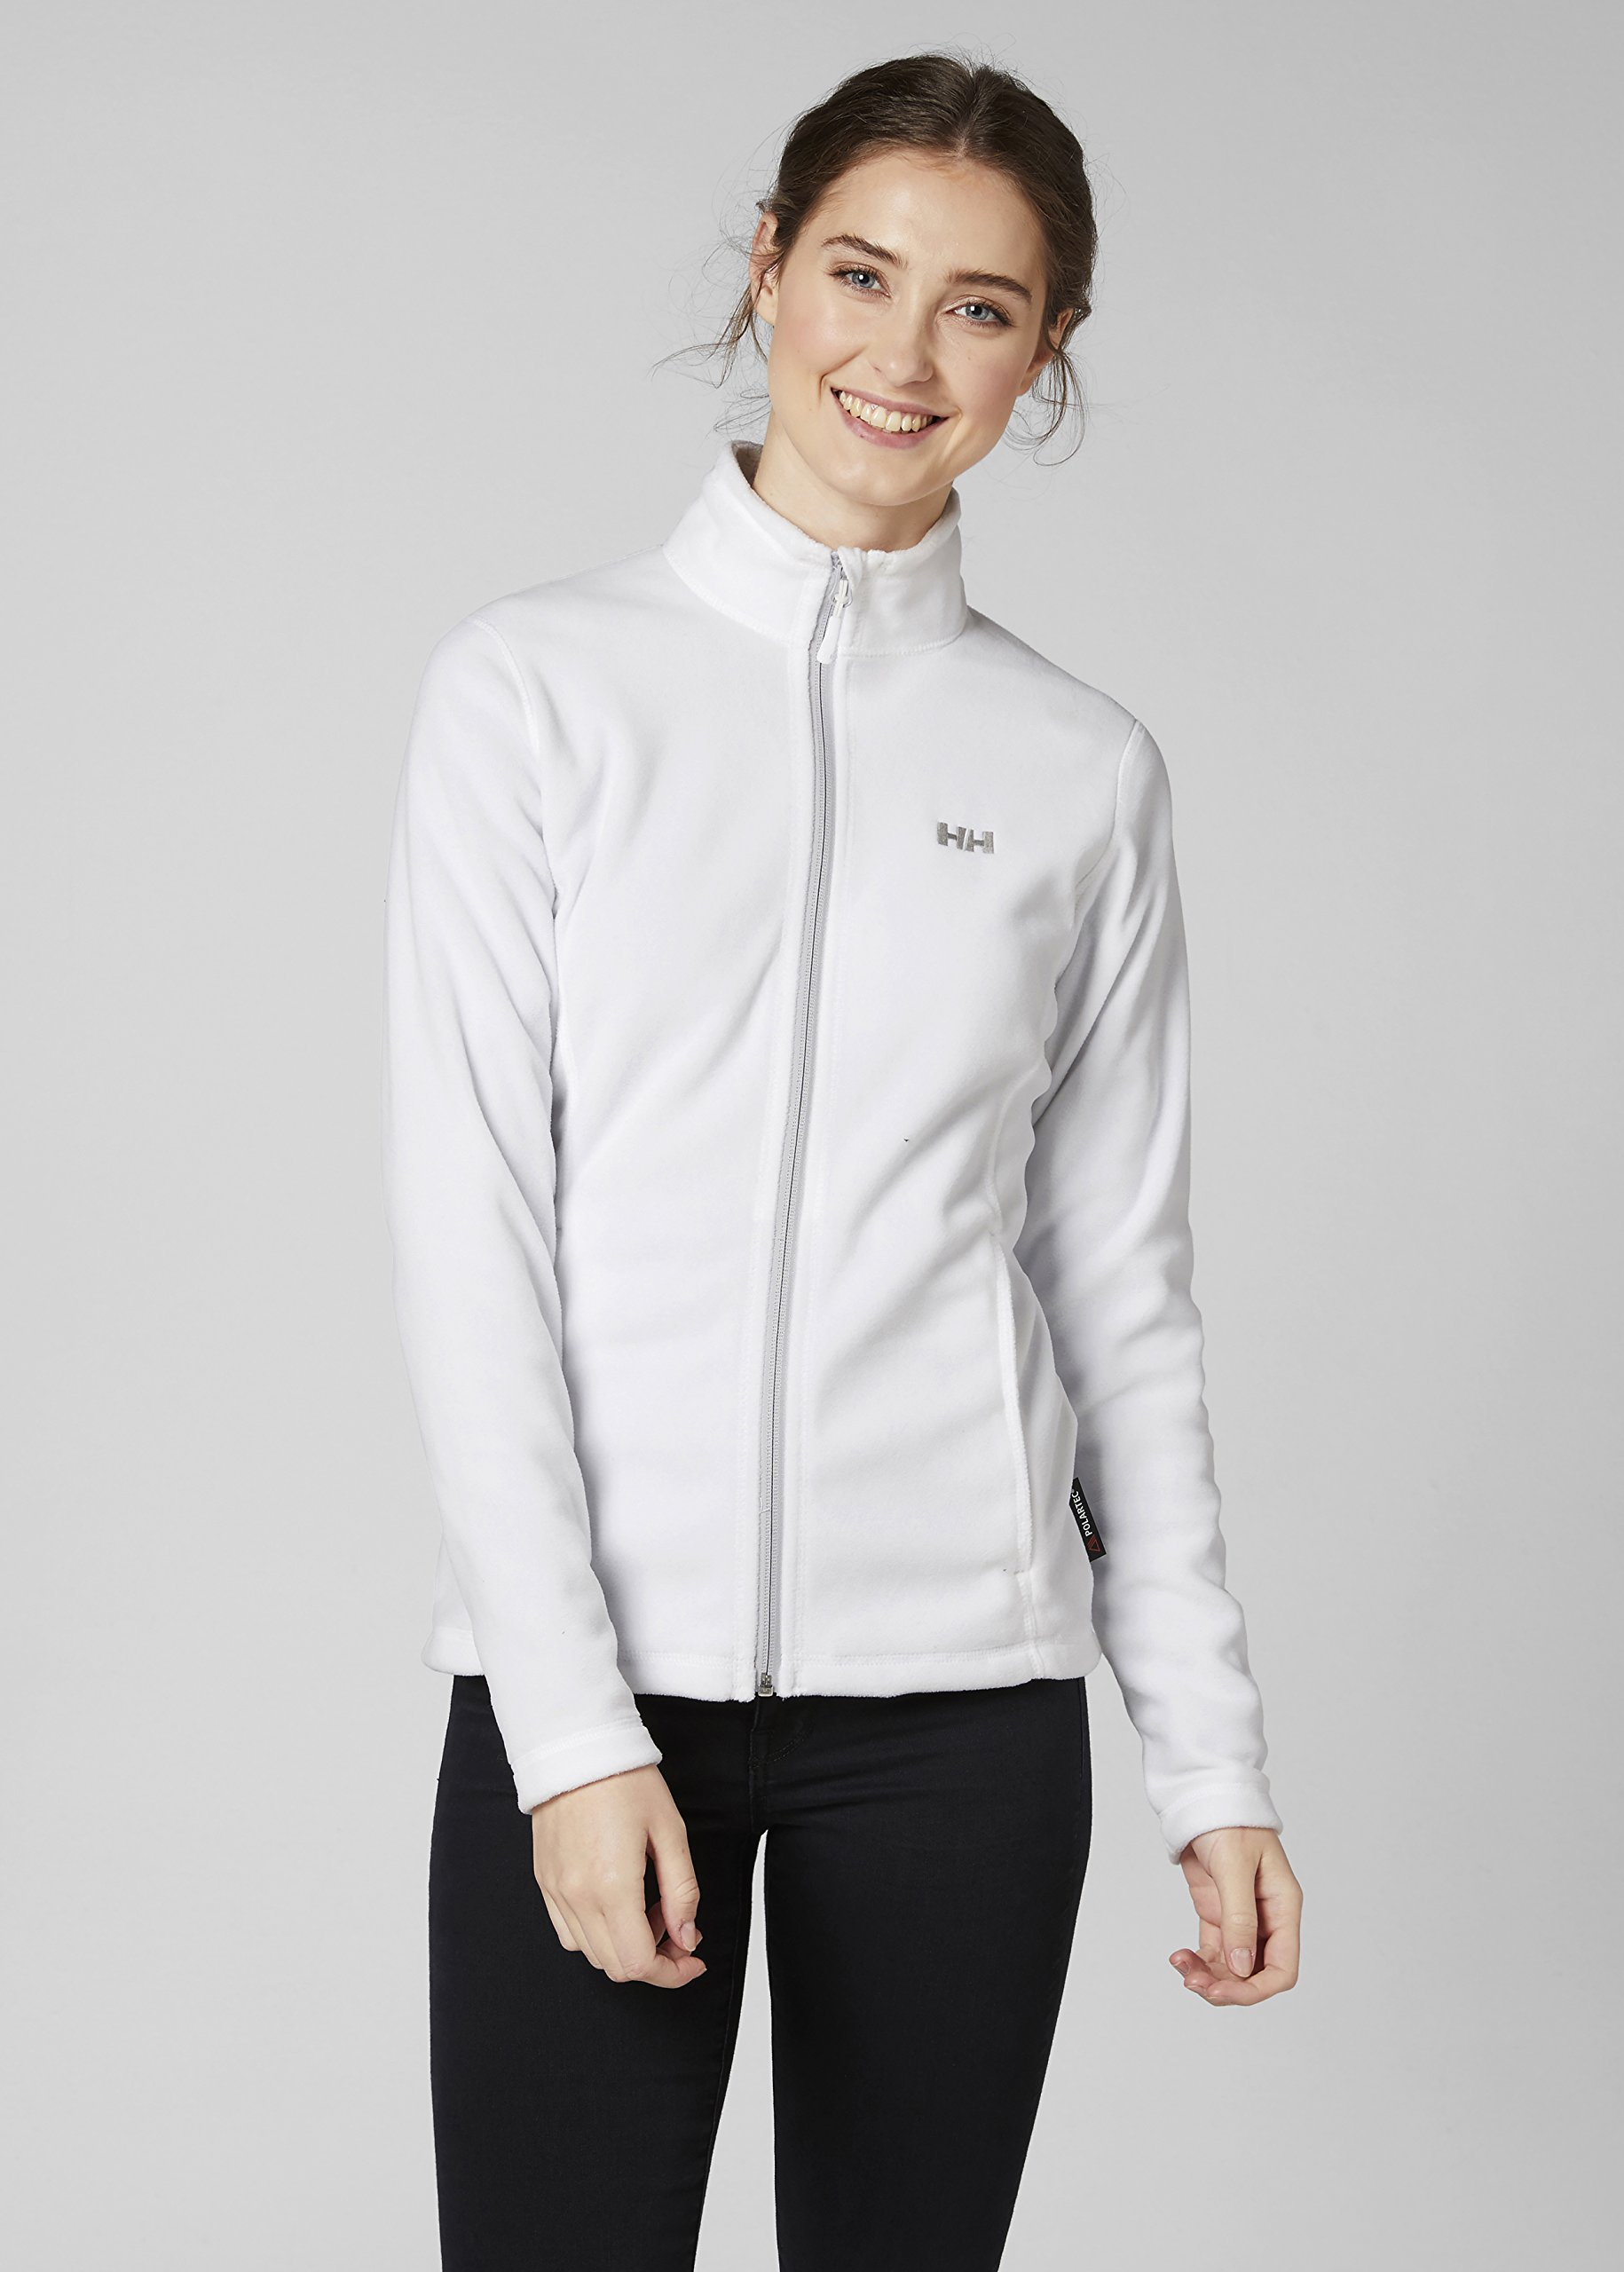 81eaoHKZKaL - Helly Hansen Women's Daybreaker Fleece